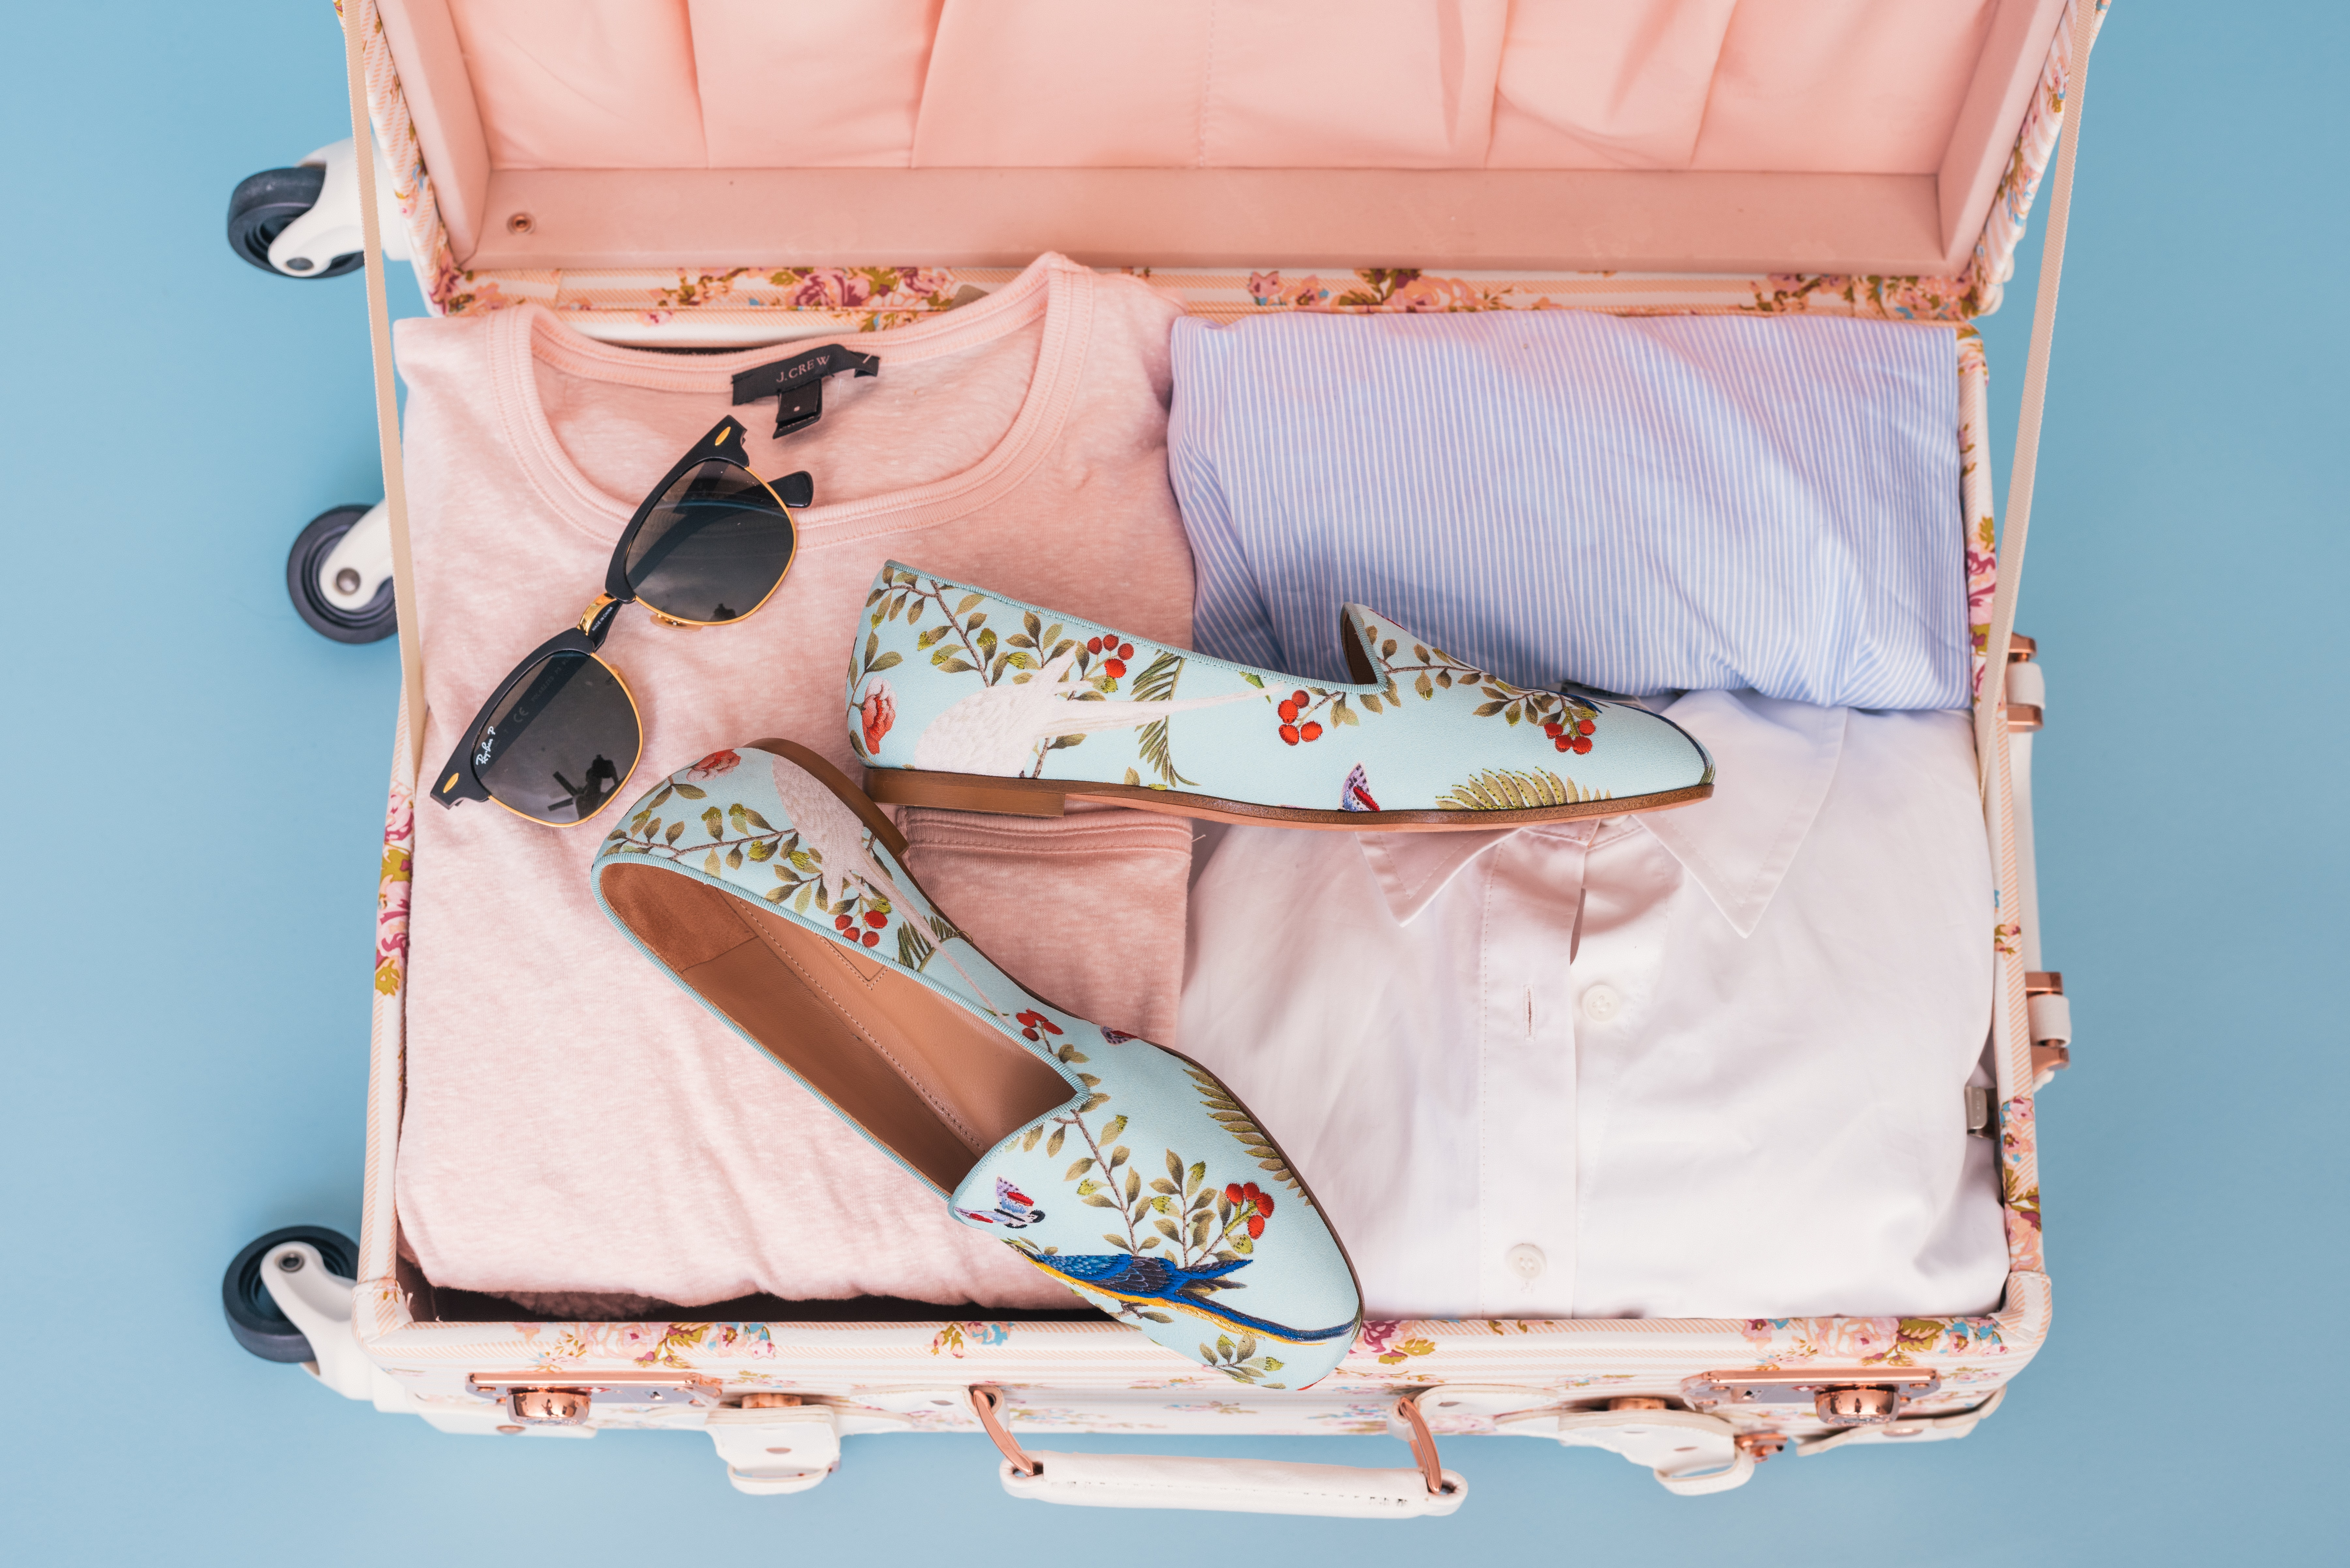 Going-on-a-Trip-How-to-Travel-Light-and-Pack-Smart